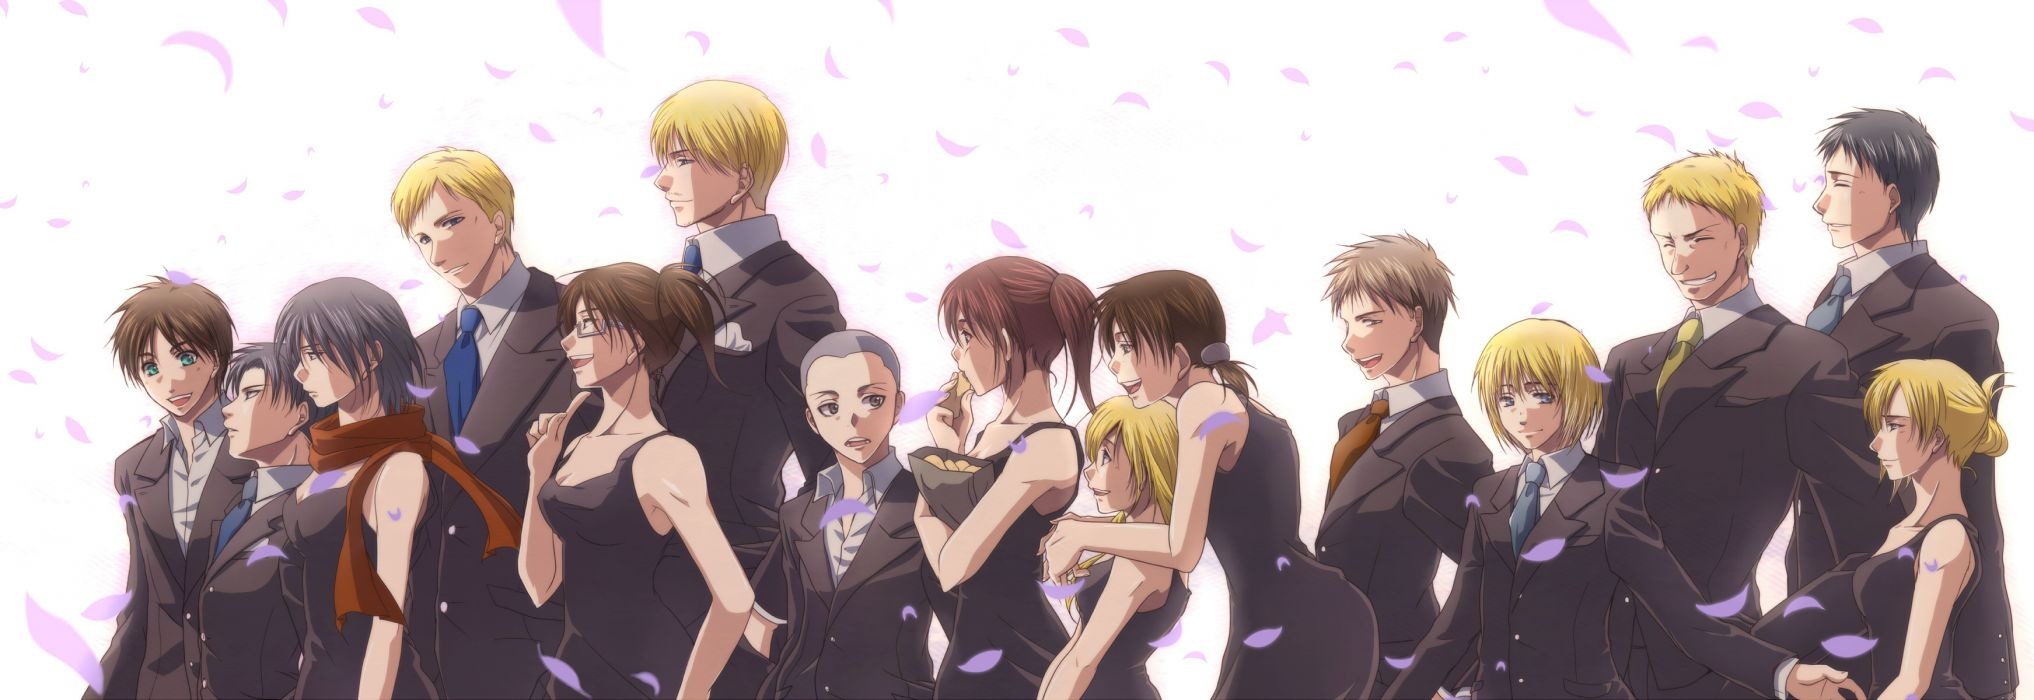 shingeki no kyojin armin arlert black hair blonde hair brown hair christa renz eren jaeger hanji zoe irvin smith petals reiner braun rivaille sasha browse suit wallpaper